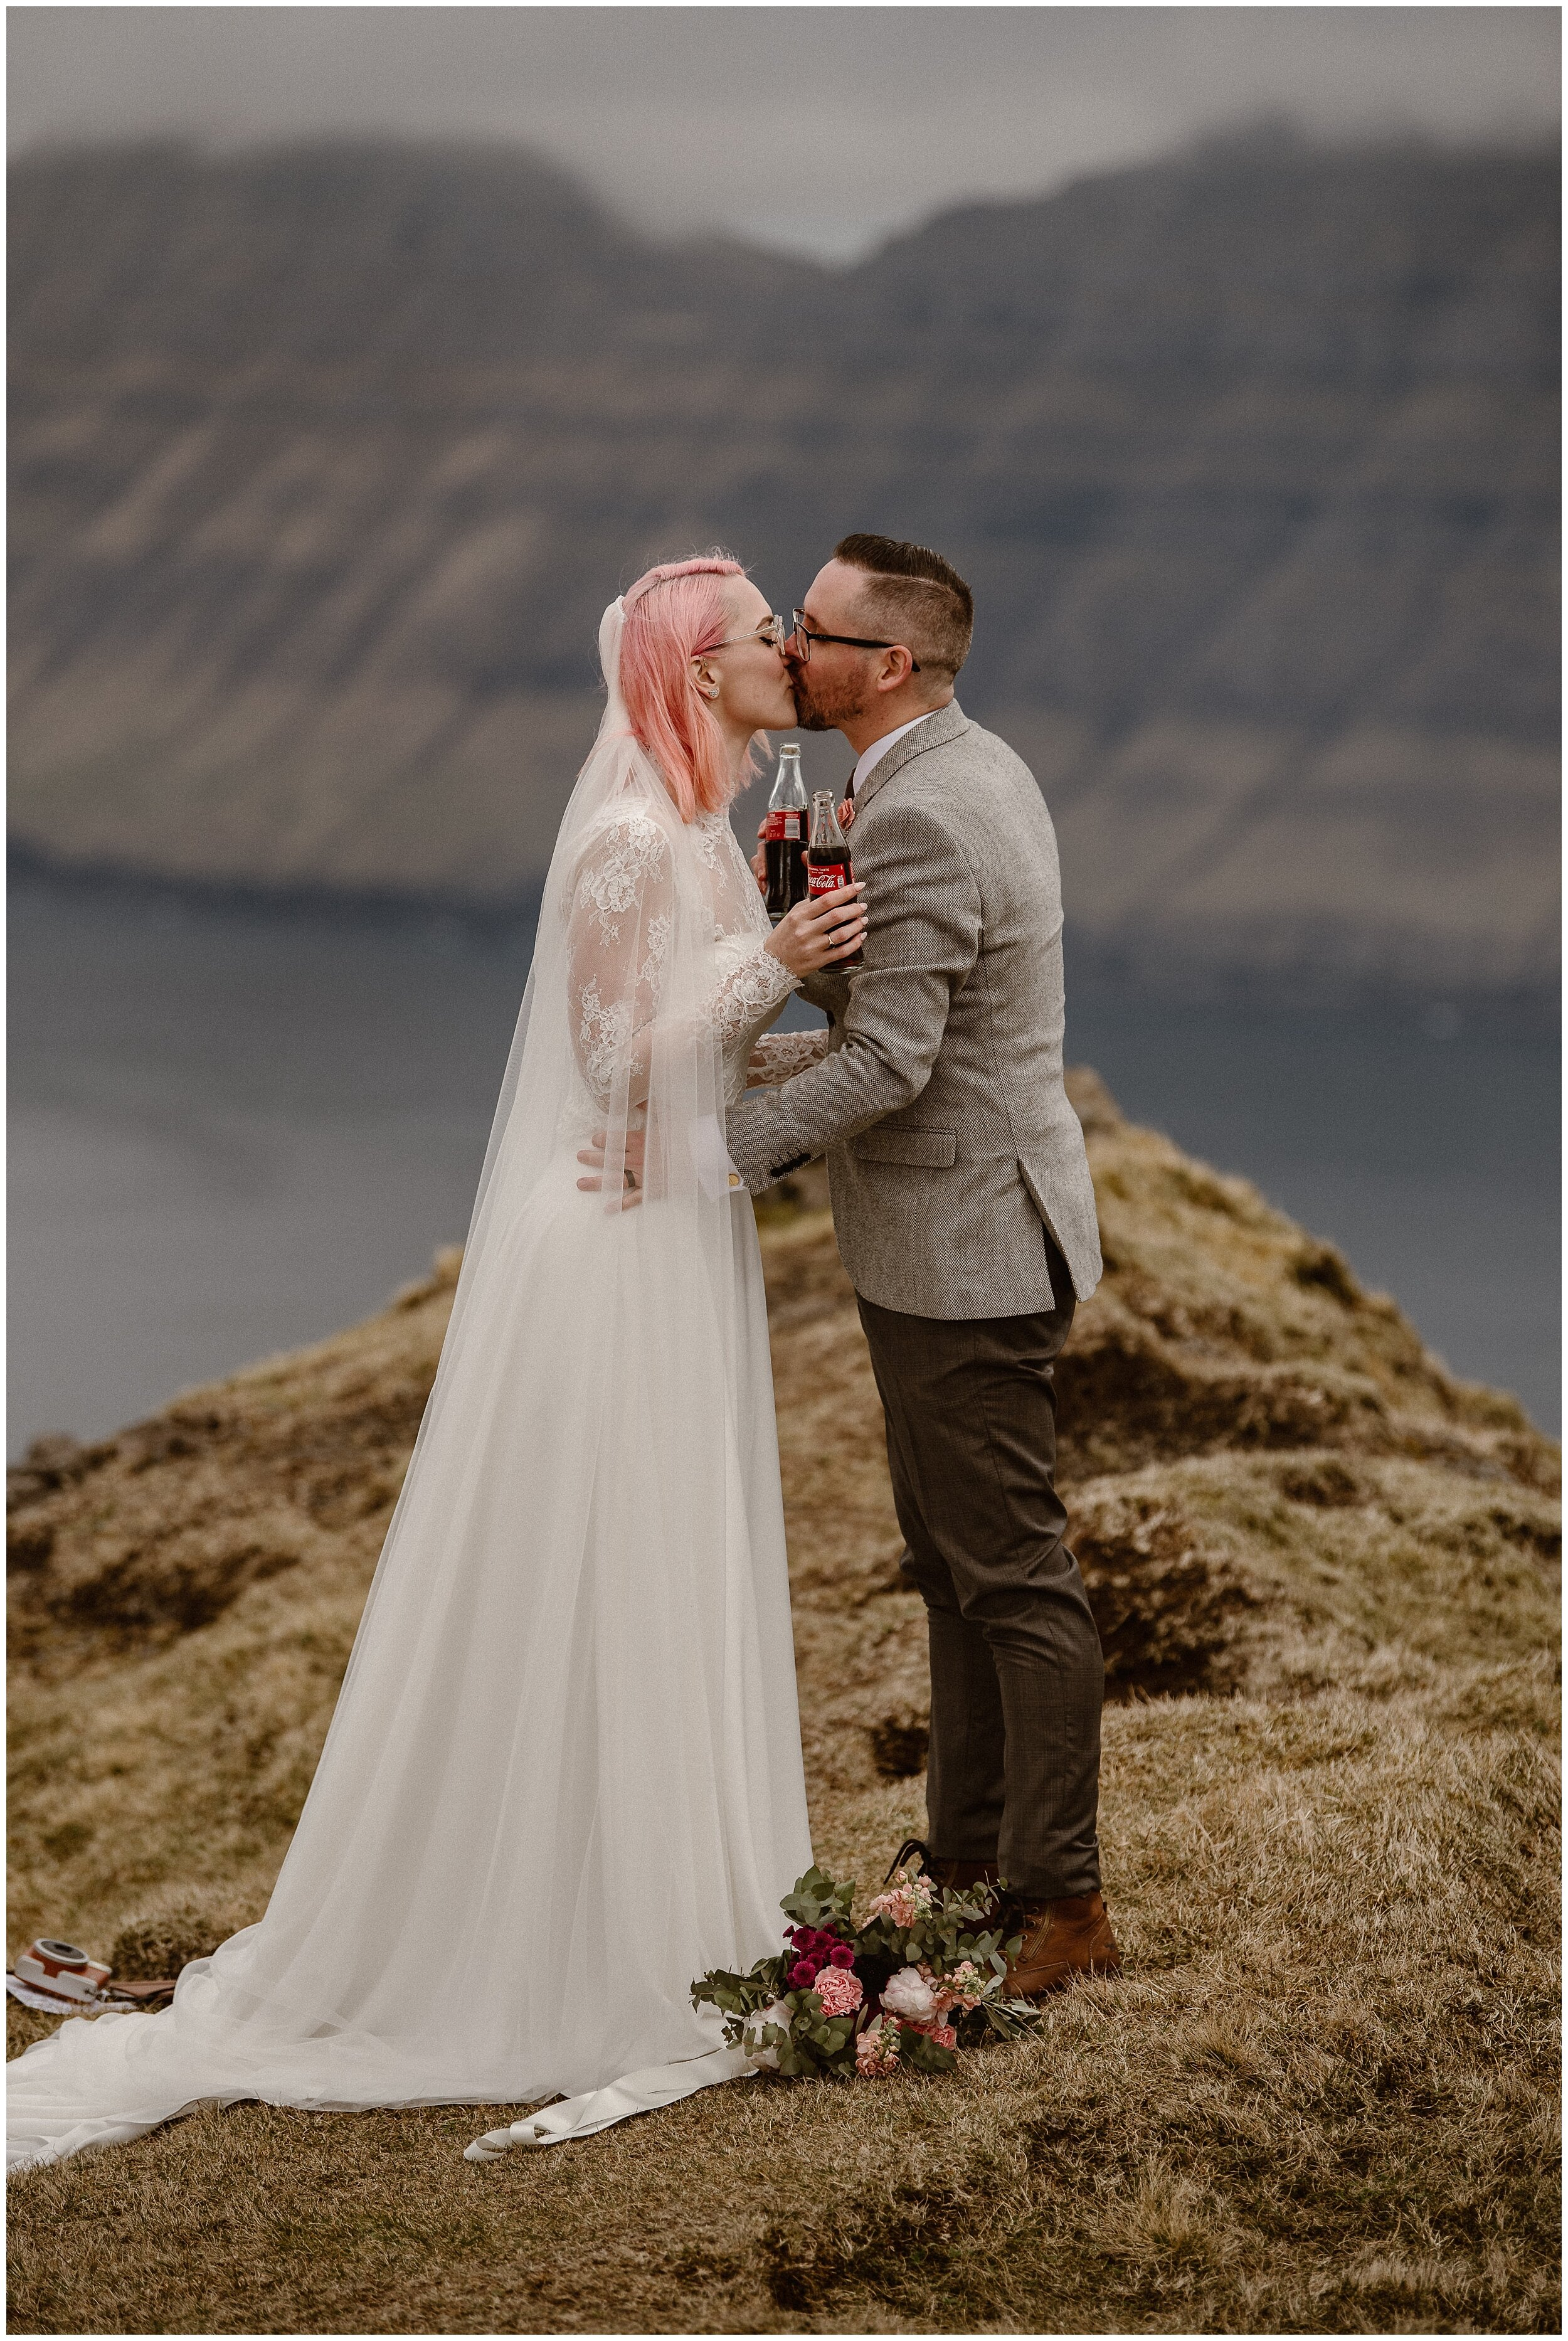 Bride and groom, Elaura and Daryn, hold each other close and kiss as they hold their vintage, glass Coke bottles in hand. Behind them, the epic, foggy, and gorgeous Faroe Island fjords can be seen amongst a misty water setting. These adventure elopement photos were captured by elopement wedding photographer Adventure Instead.